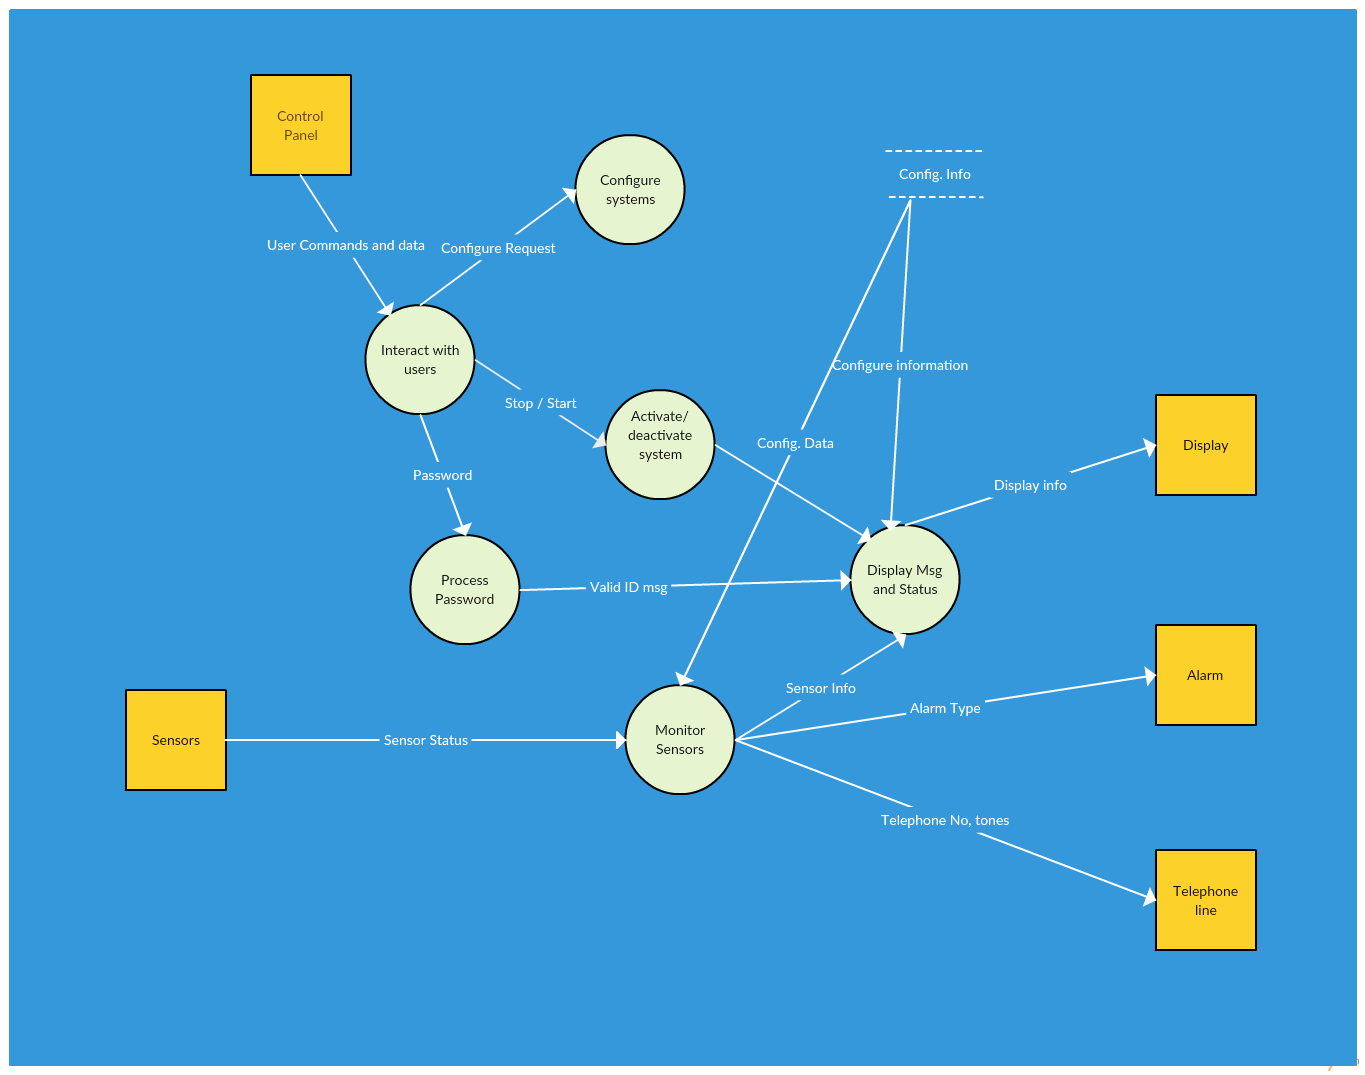 context diagram for library system wiring ignition switch data flow templates to map flows creately blog